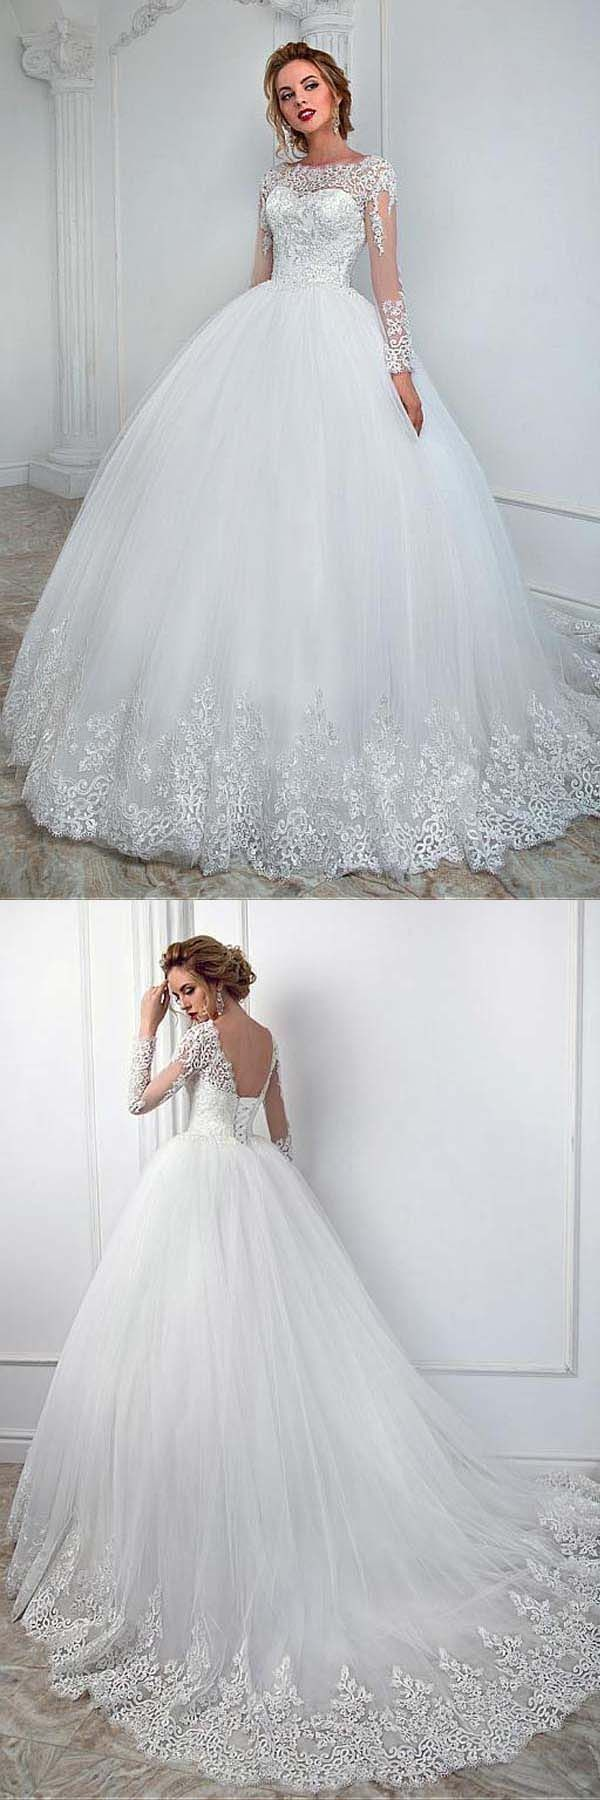 Love this elegant lace bridal ball gown with sleeves helps hide